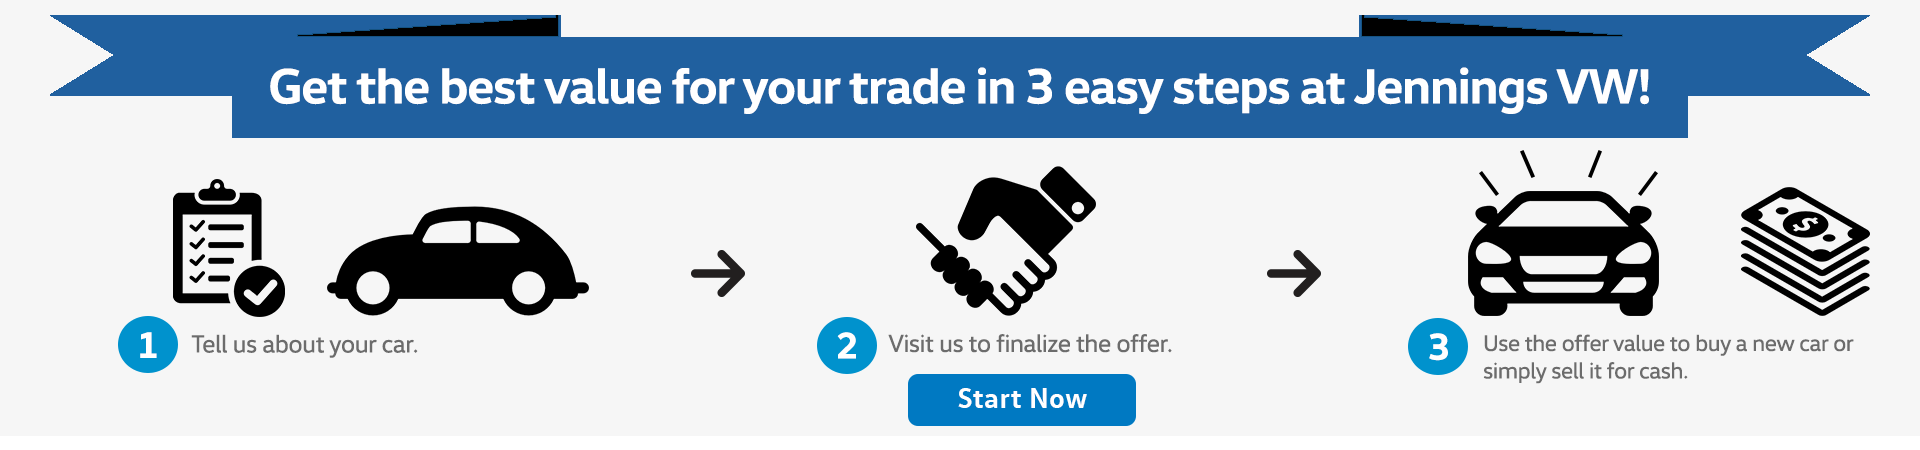 Get the best value for your trade